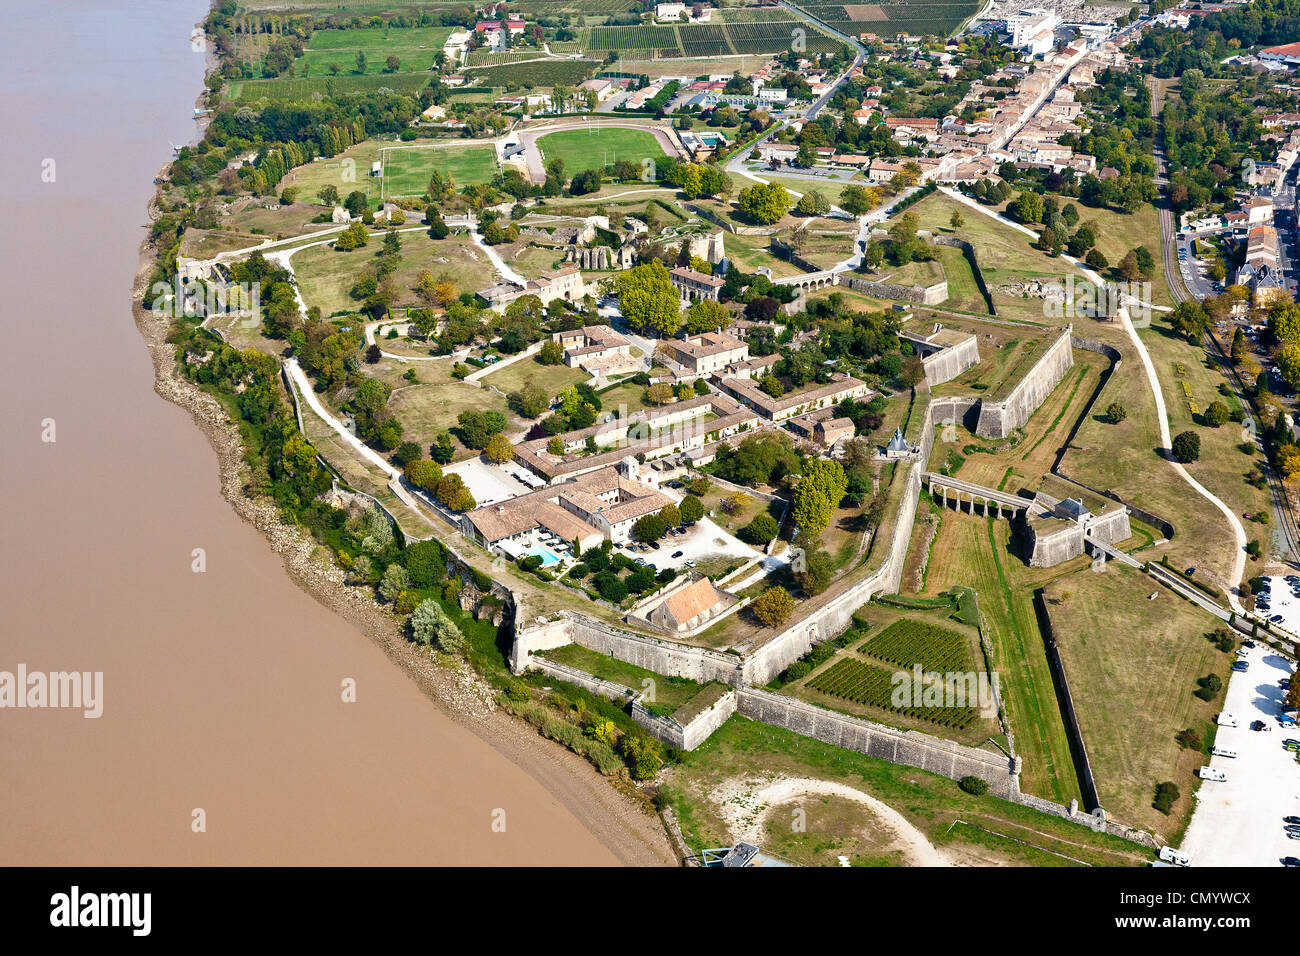 France, Gironde, Blaye, La Citadelle, Fortifications of Vauban, listed as World Heritage by UNESCO (aerial view) - Stock Image